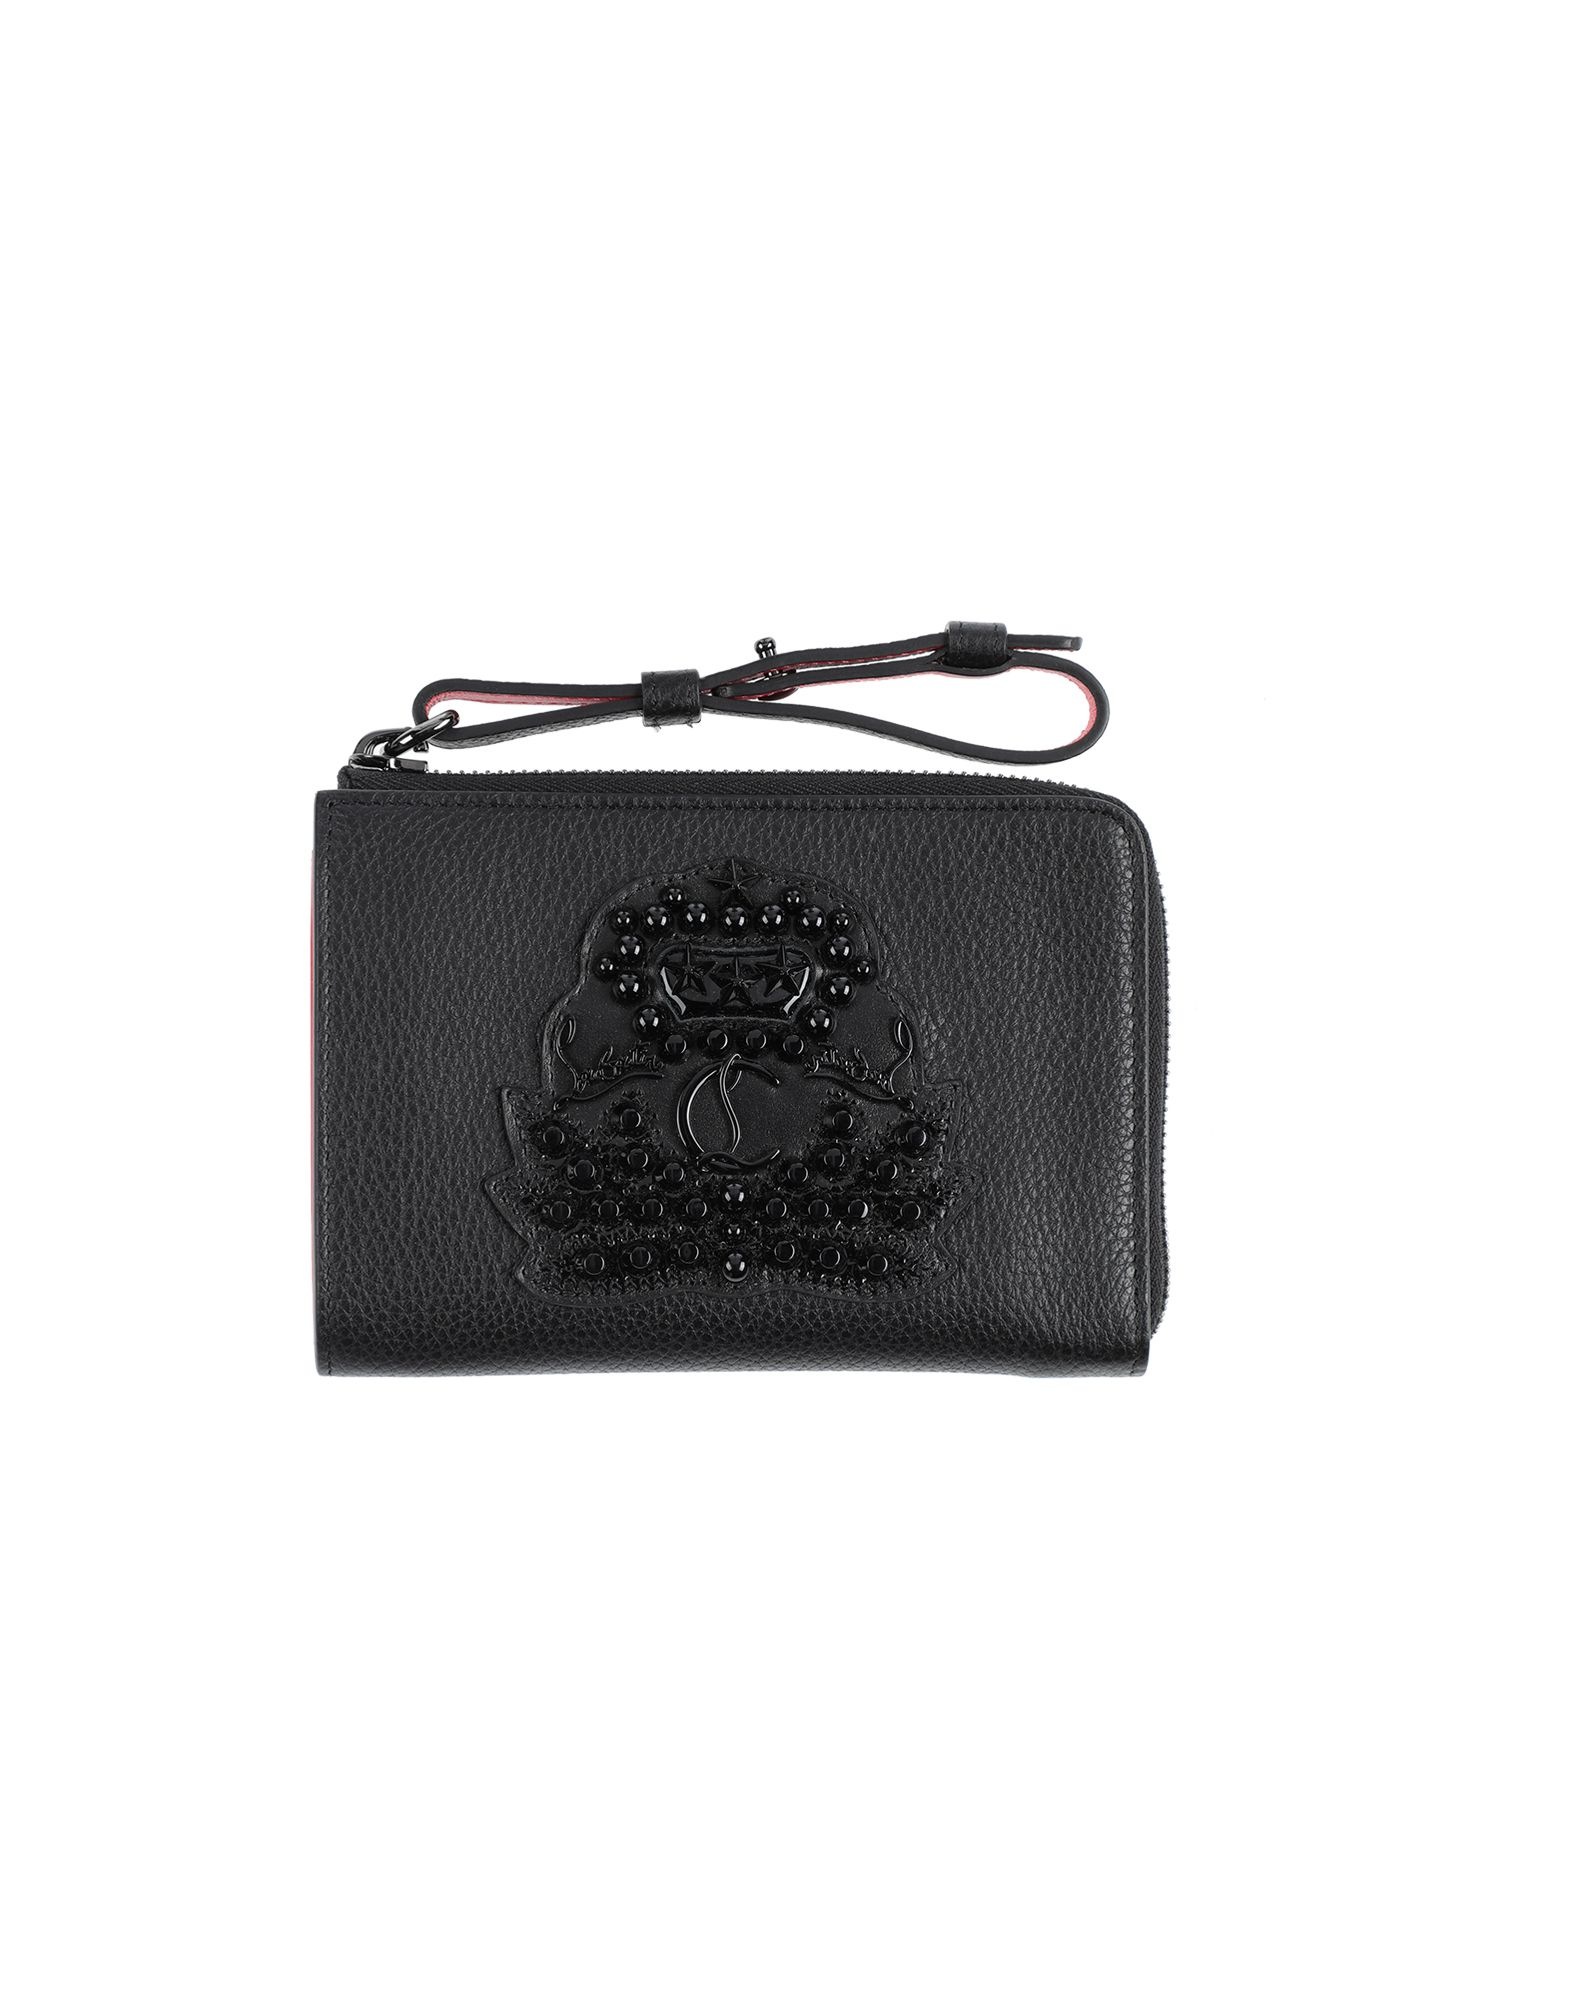 CHRISTIAN LOUBOUTIN Wallets. textured leather, logo, studs, zip, basic solid color, internal compartments, contains non-textile parts of animal origin. Soft Leather